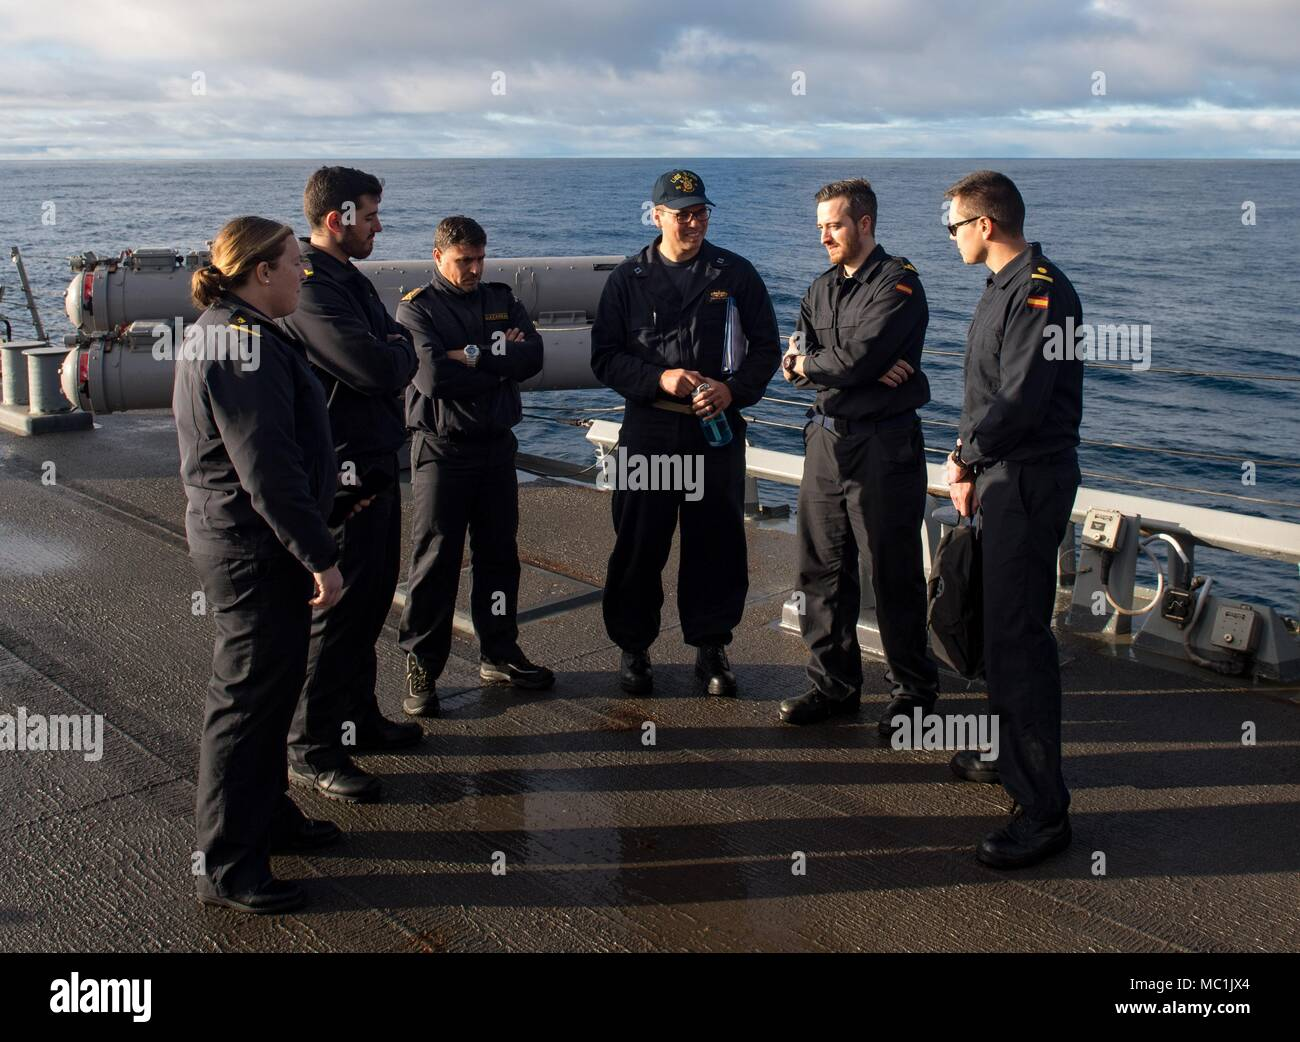 ATLANTIC OCEAN (Jan. 21, 2018) Lt. Robert Harris, middle, the plans and tactics officer aboard the Arleigh Burke-class guided-missile destroyer USS Ross (DDG 71), gives a tour to liaison representatives from the Spanish navy during an exercise between the United States and Spain Jan. 21, 2018. Ross is currently participating in an at-sea exercise with the Spanish navy designed to improve the countries' interoperability when conducting maritime training, including gun and small-boat evolutions. Ross, forward-deployed to Rota, Spain, is on its sixth patrol in the U.S. 6th Fleet area of operation Stock Photo